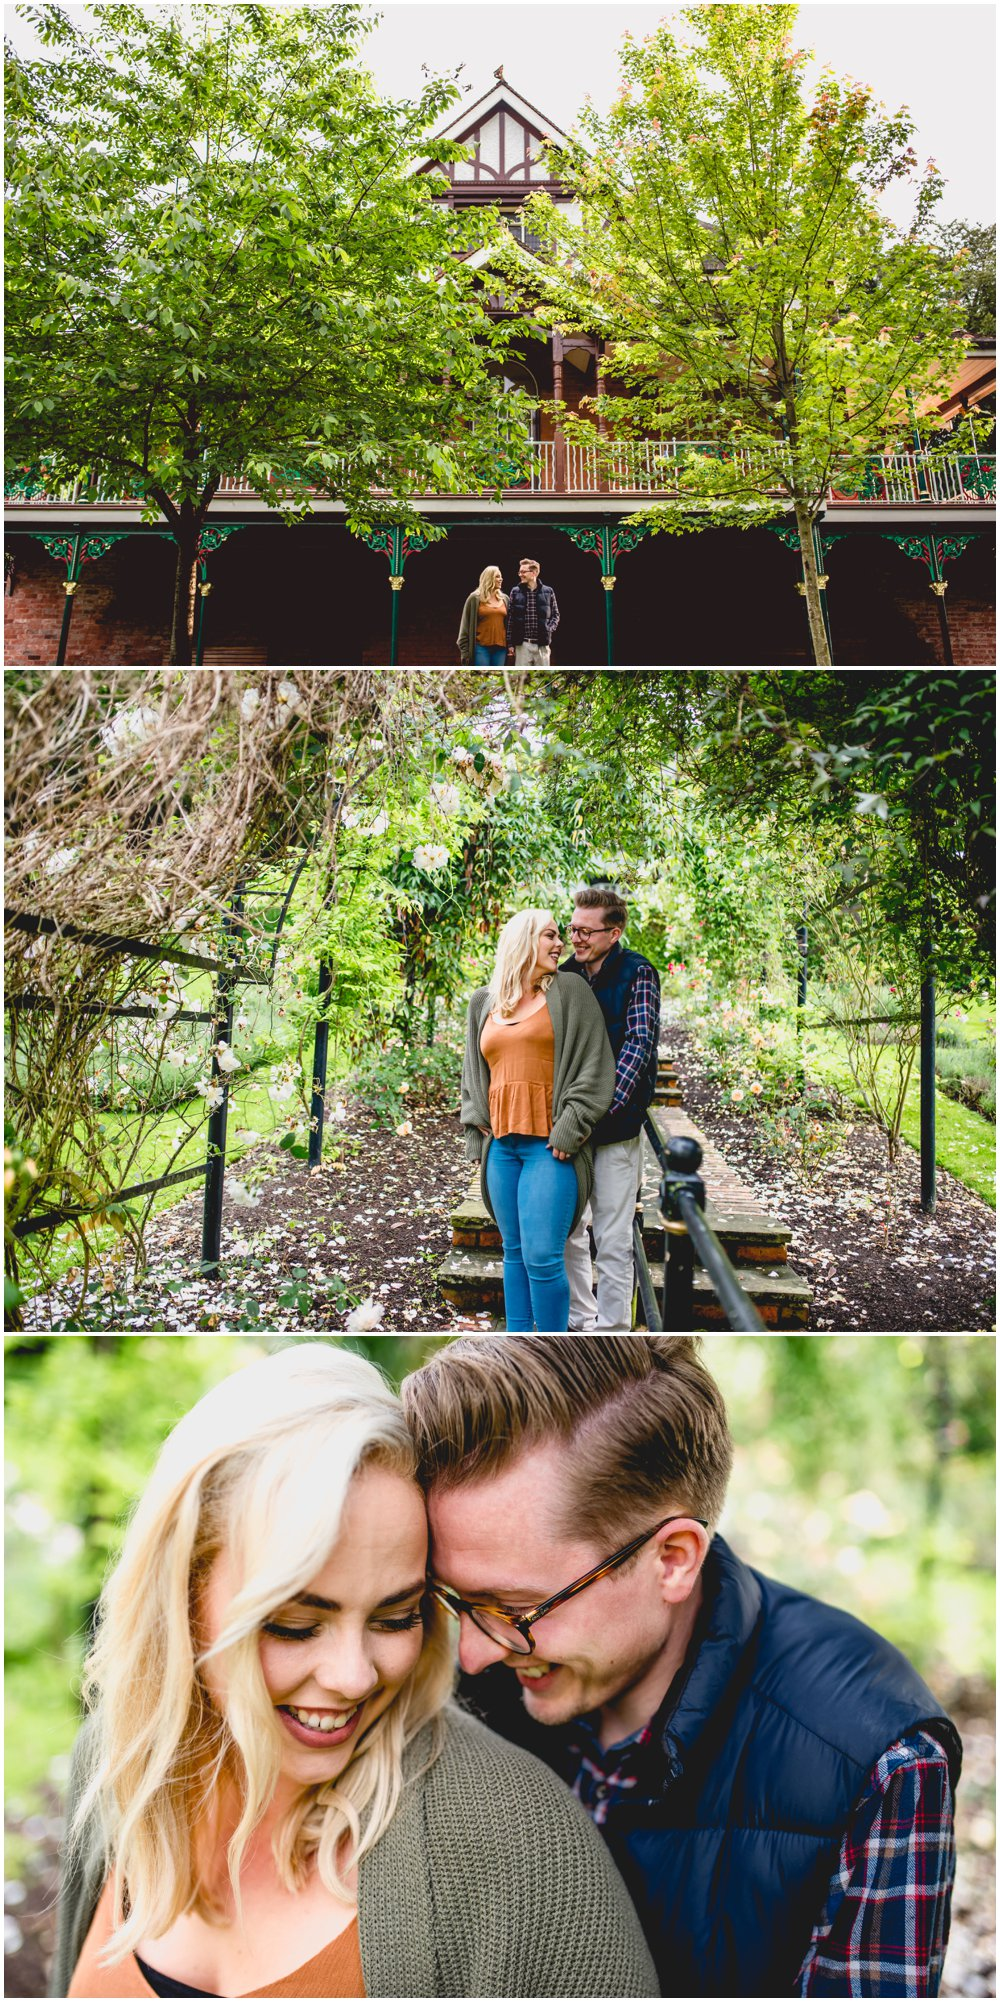 Beau and Phil's Engagement Shoot at Walsall Arboretum by West Midlands, Birmingham and Sutton Coldfield Wedding Photographer, Lisa Carpenter Photography